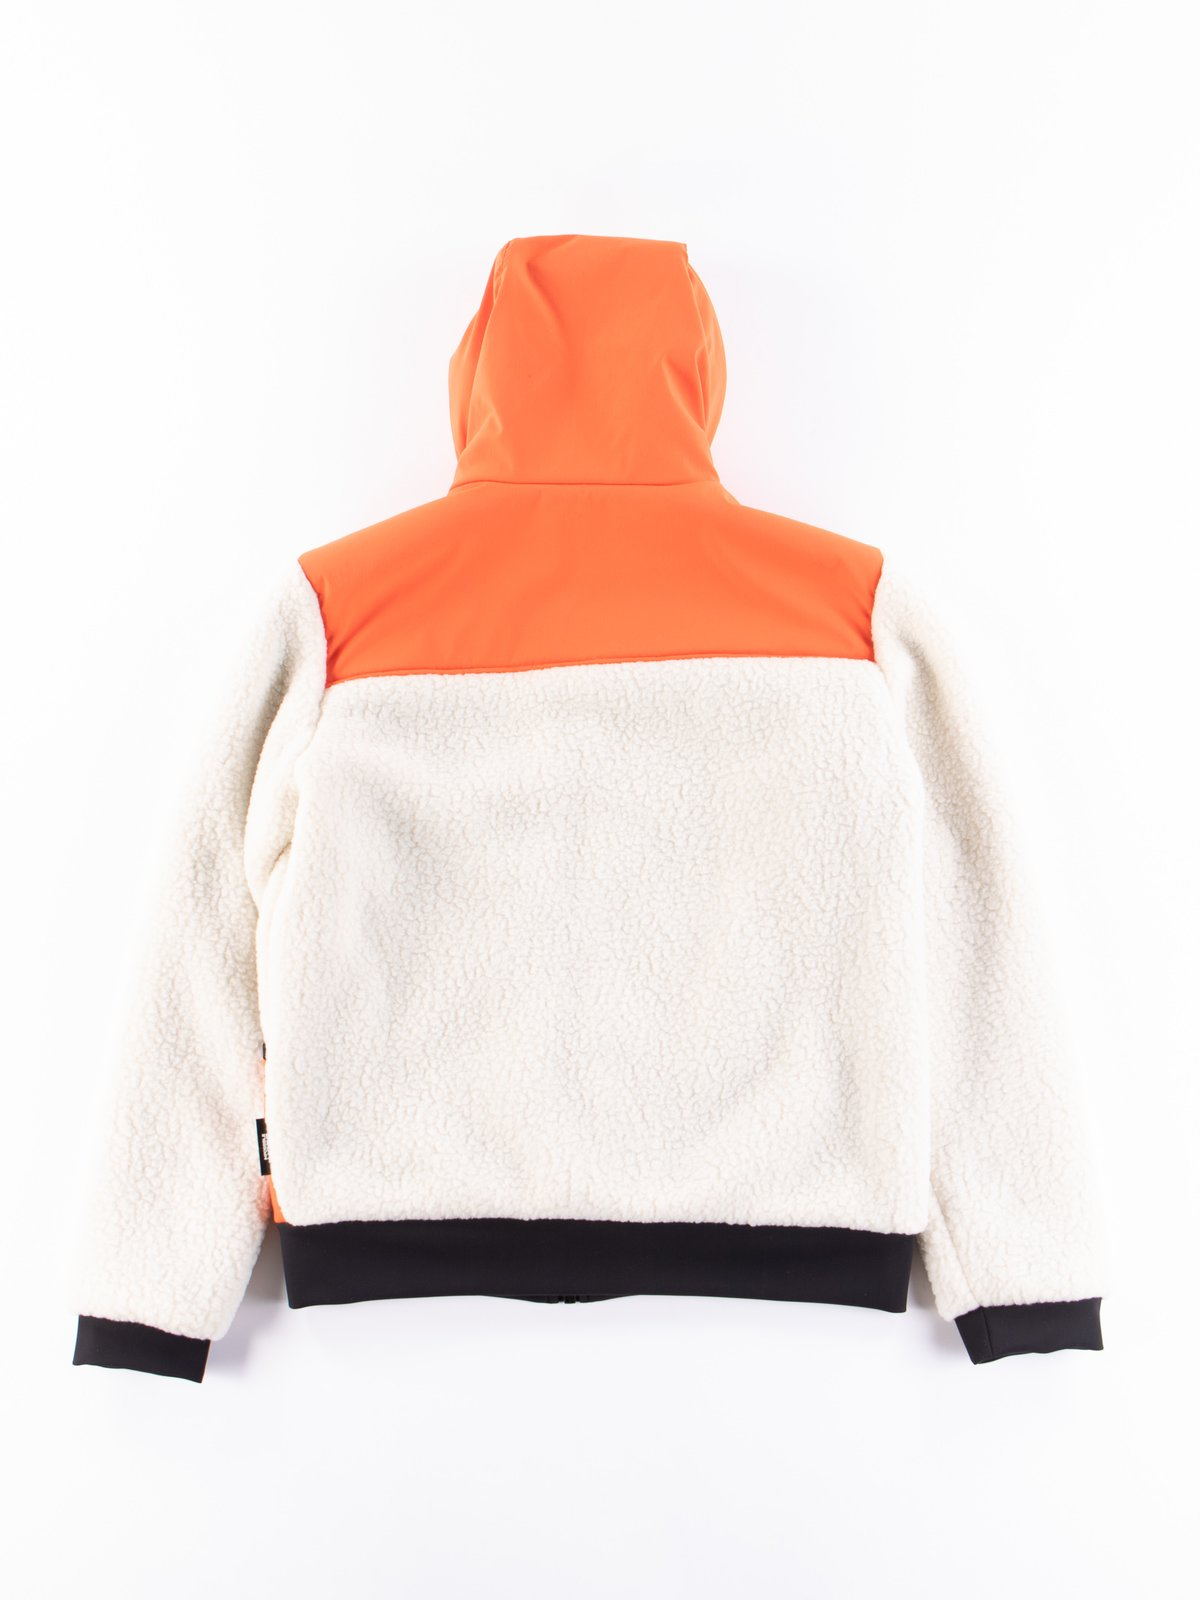 Orange Reversible Hooded Jogger - Image 8